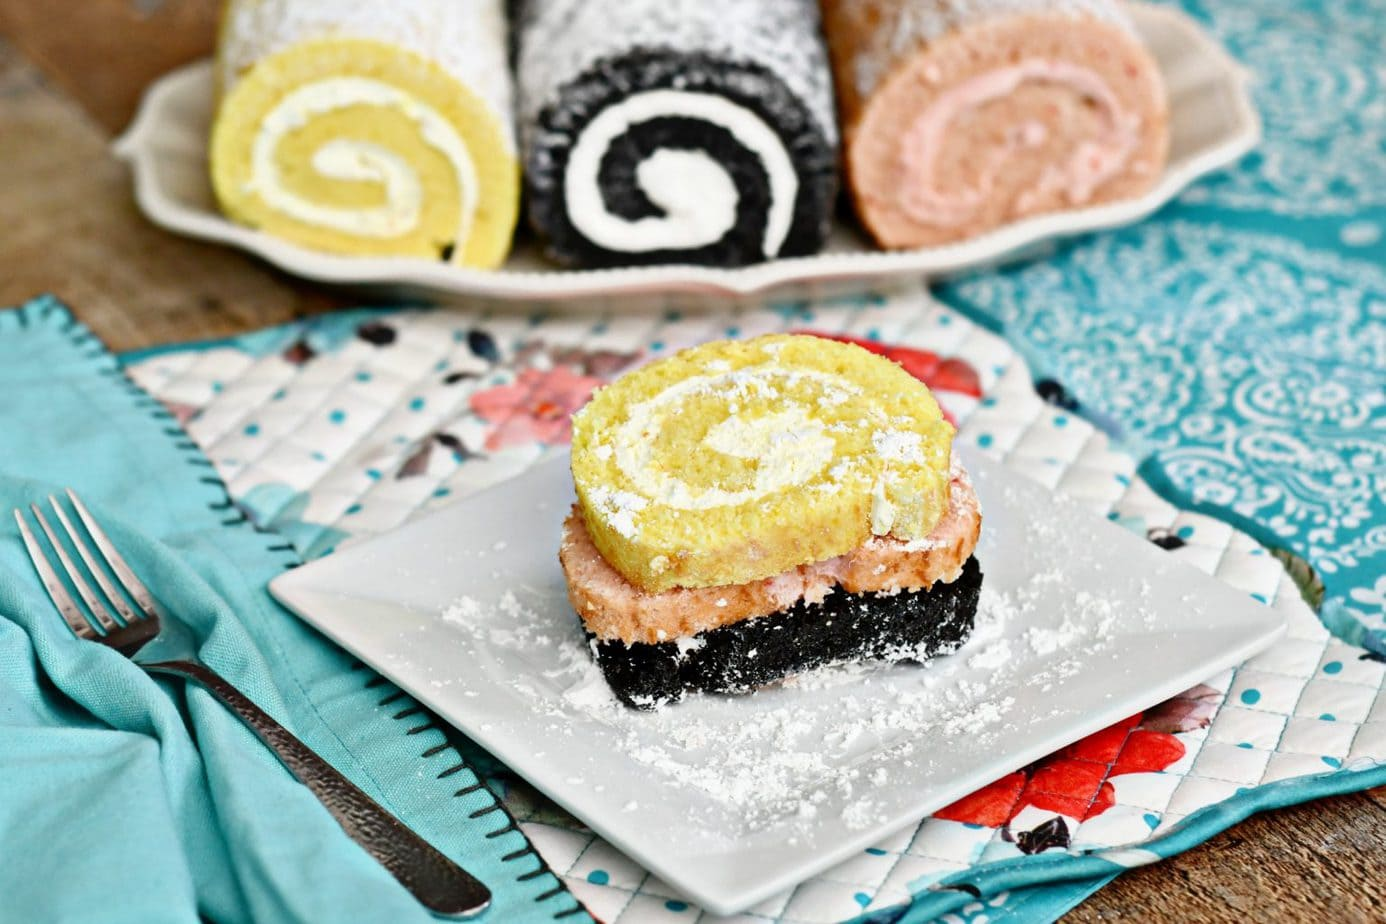 Brie Brie Blooms photo with Lemon, Chocolate, and Strawberry cake roll on multiple colored napkins and white plates